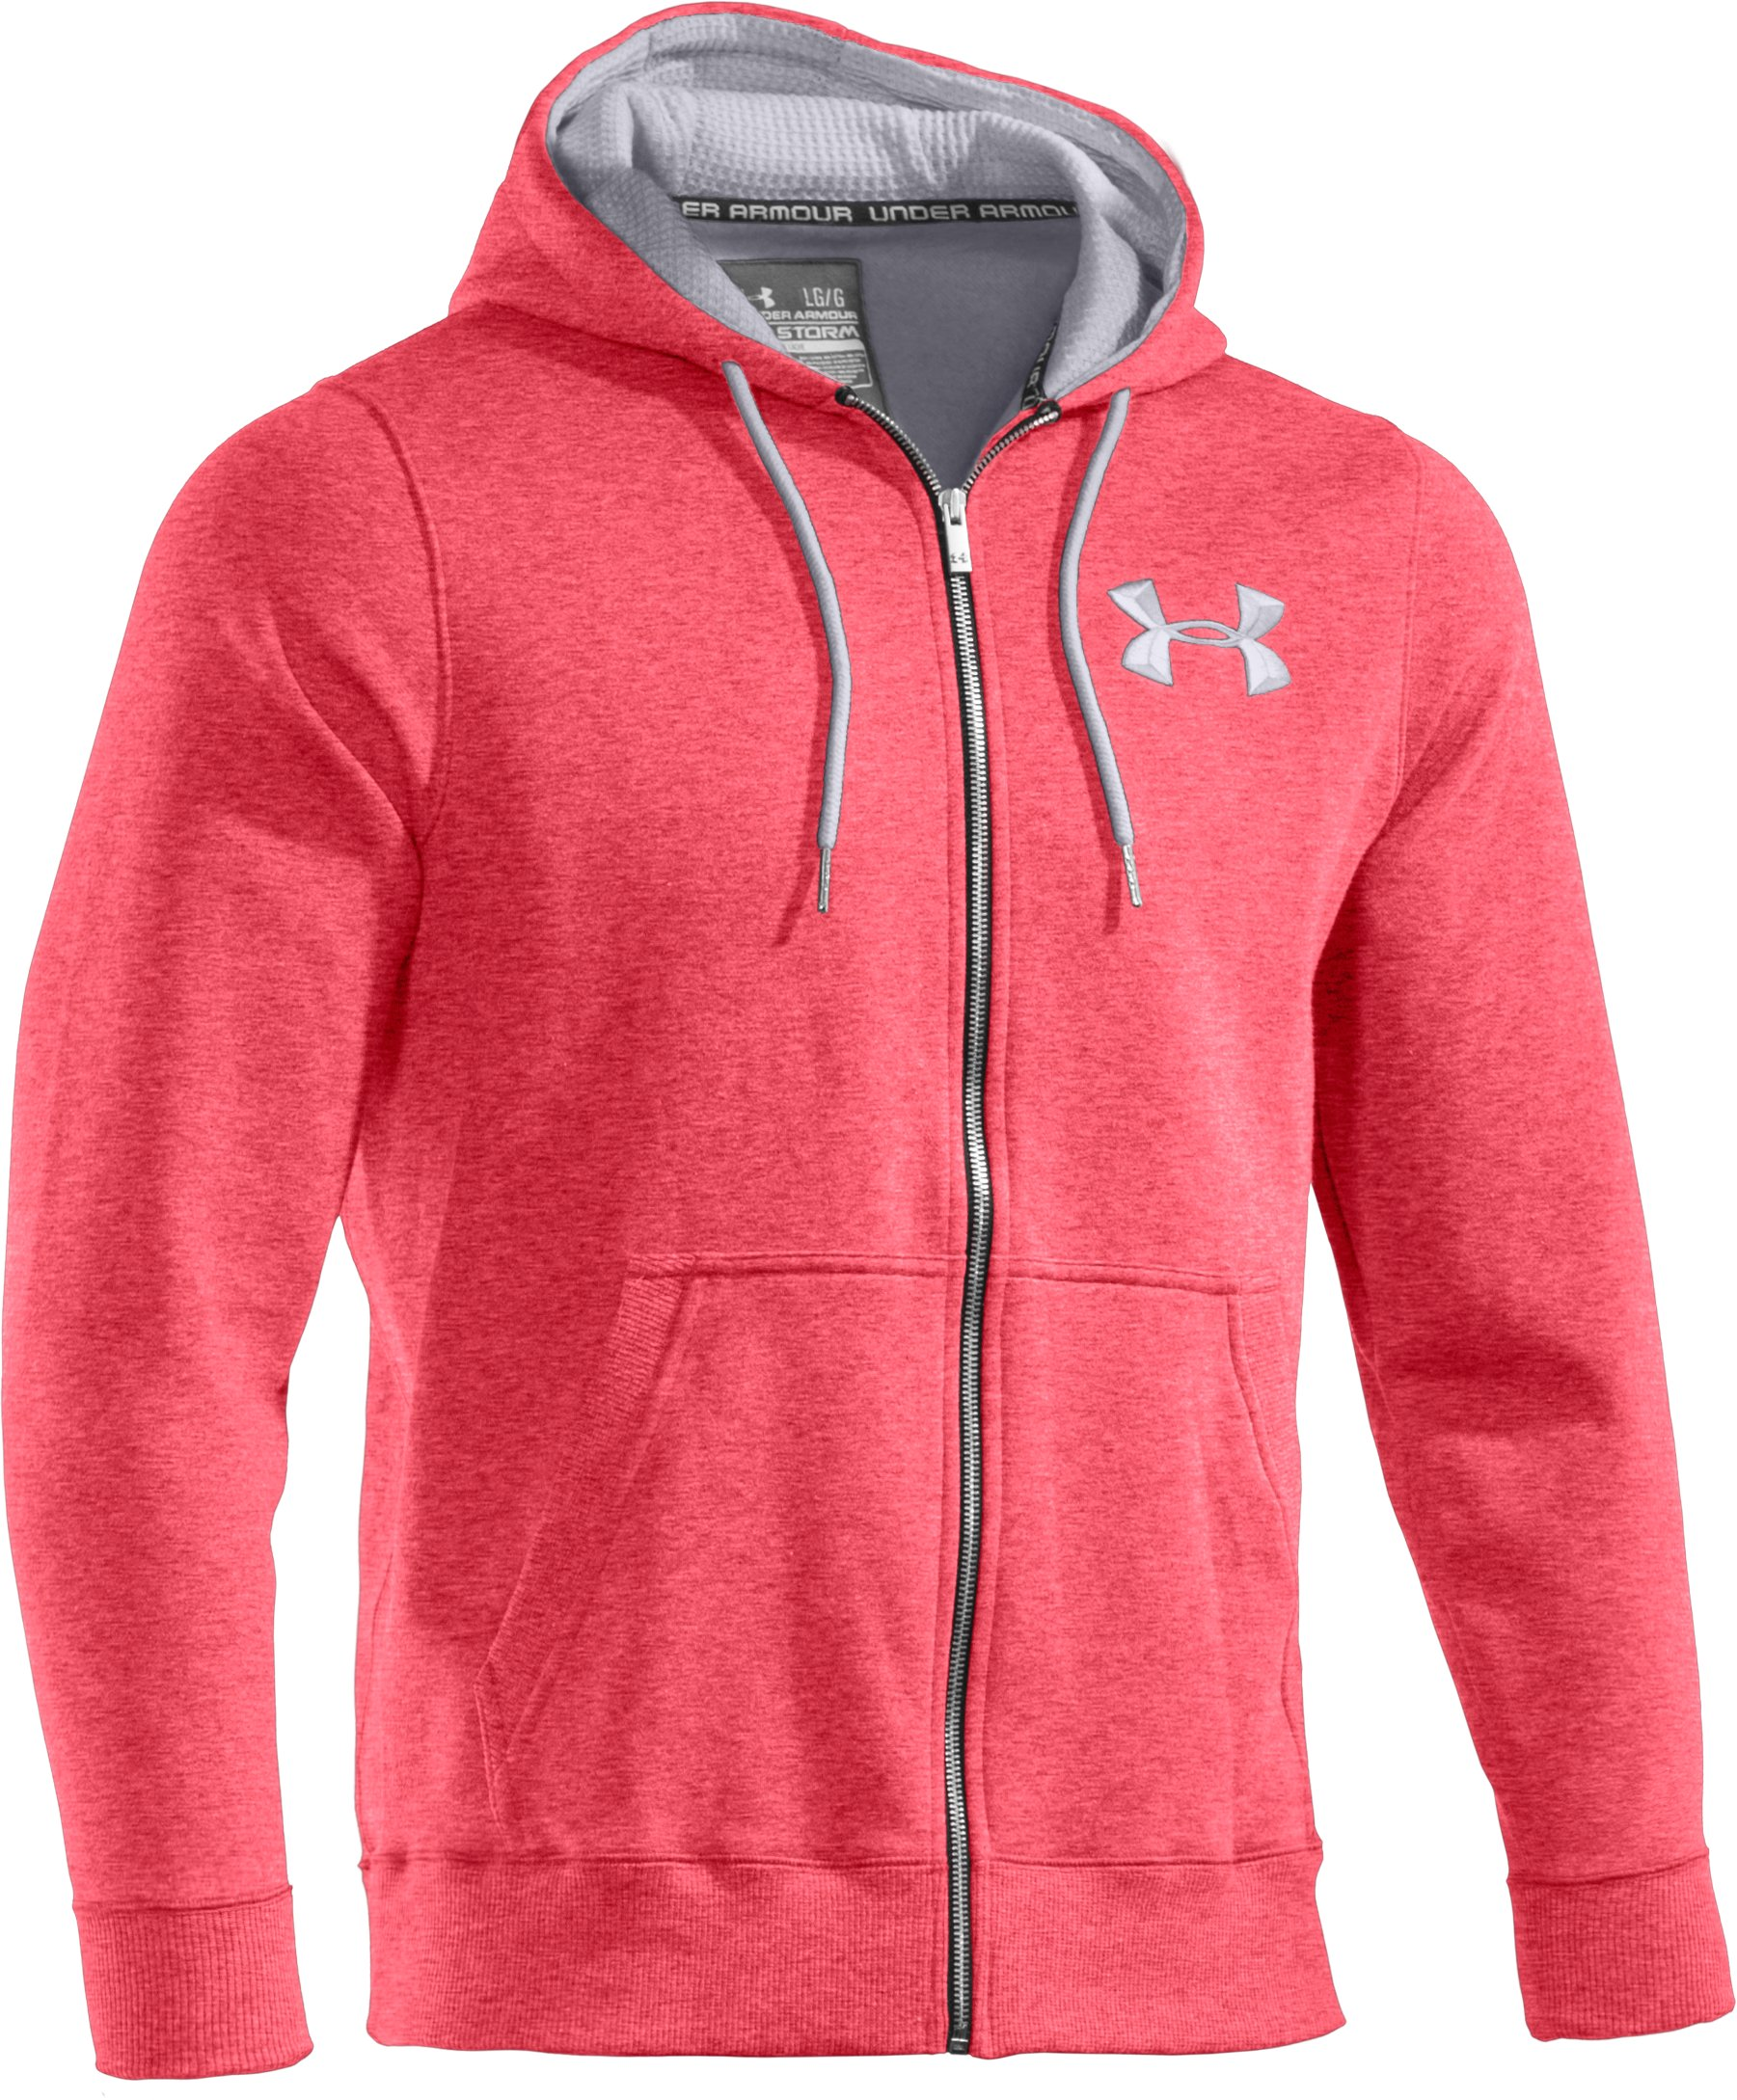 Men's Charged Cotton® Storm Full Zip Hoodie, Red